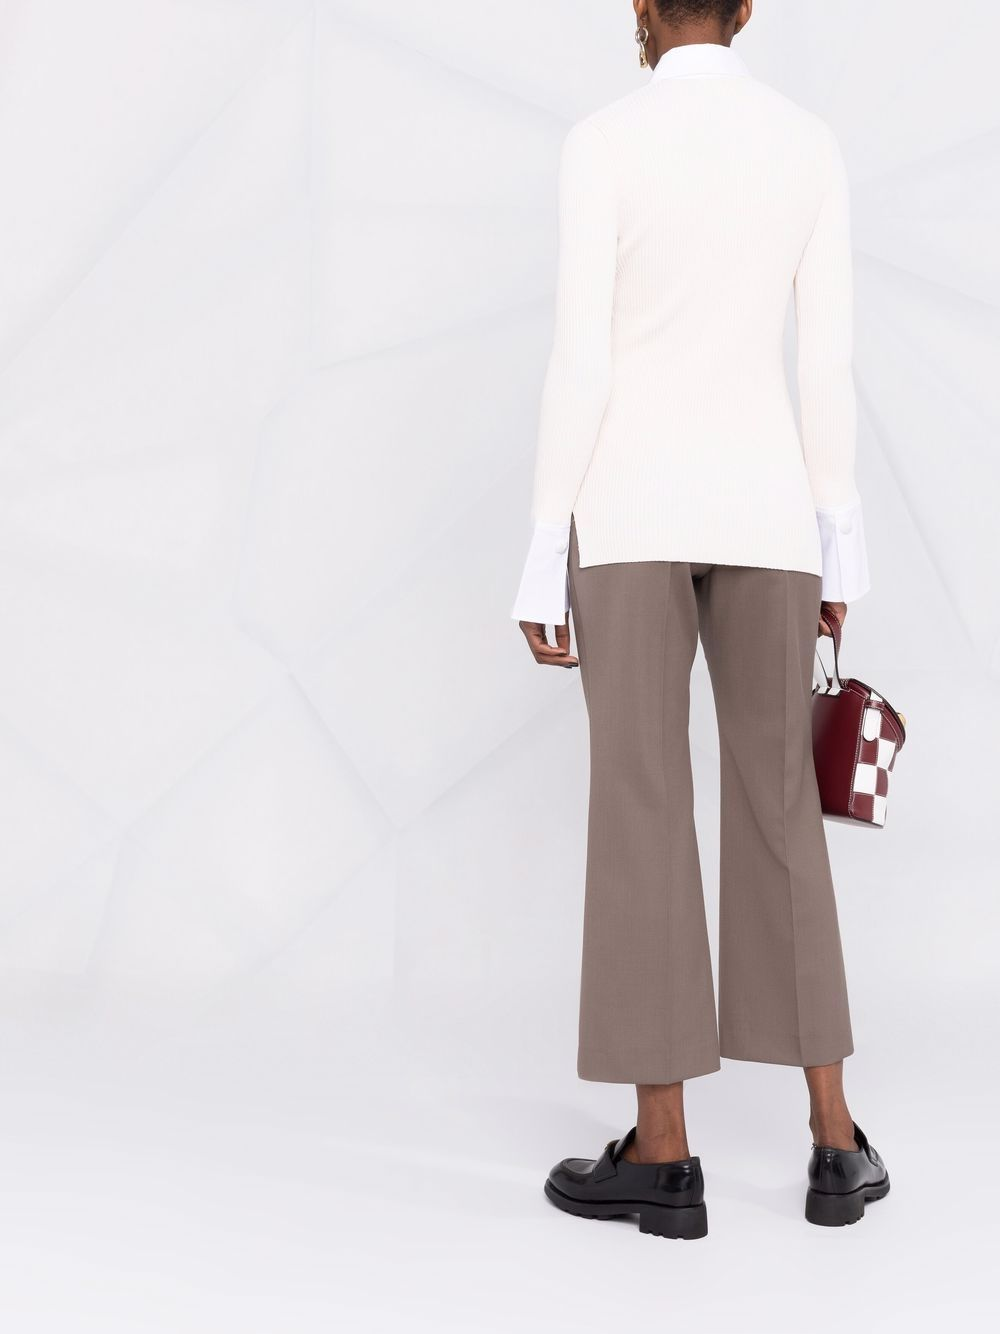 white knitted shirt-style top featuring crystal-embellished buttons GANNI |  | K1562115